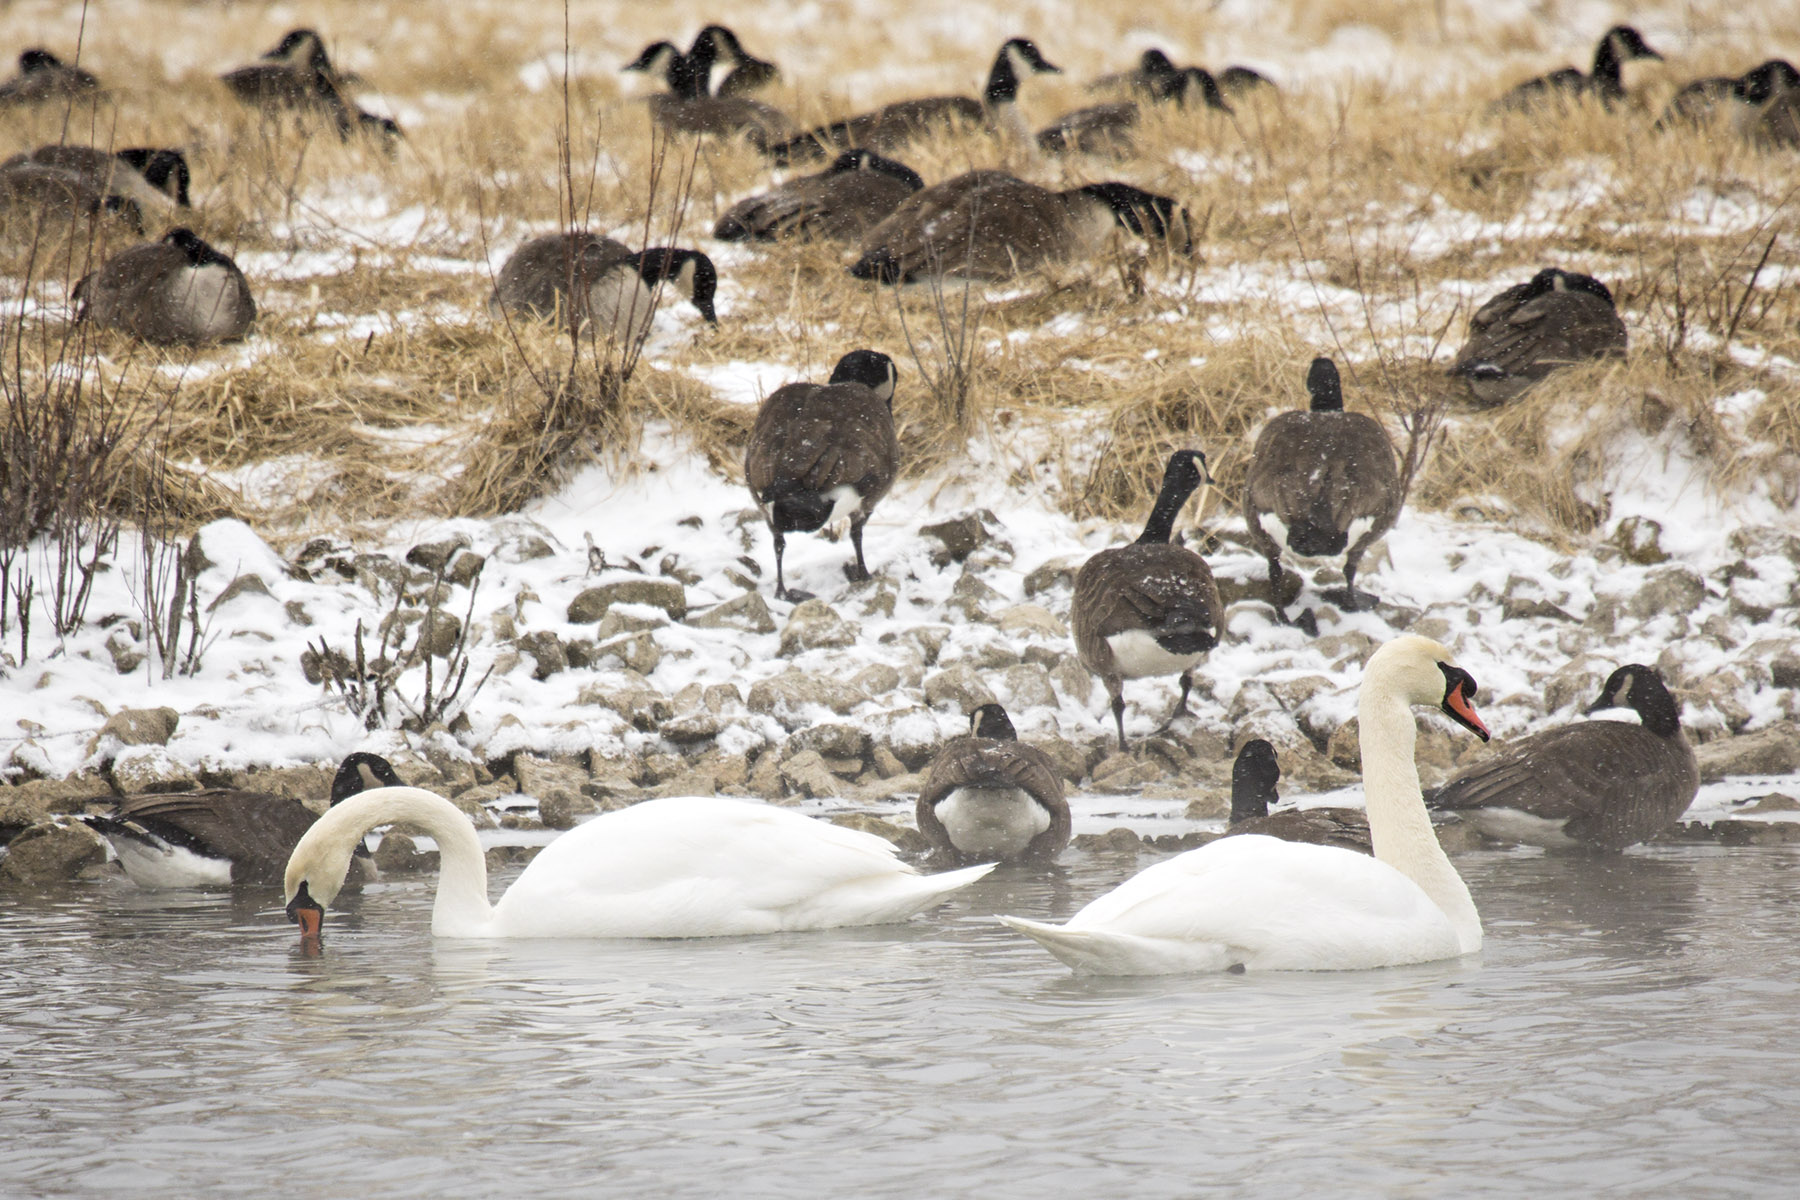 A pair of mute swans grace a Main Injector pond at the start of the snow storm on Feb. 5. Photo: Marty Murphy, nature, wildlife, animal, bird, swan, pond, winter, water, snow